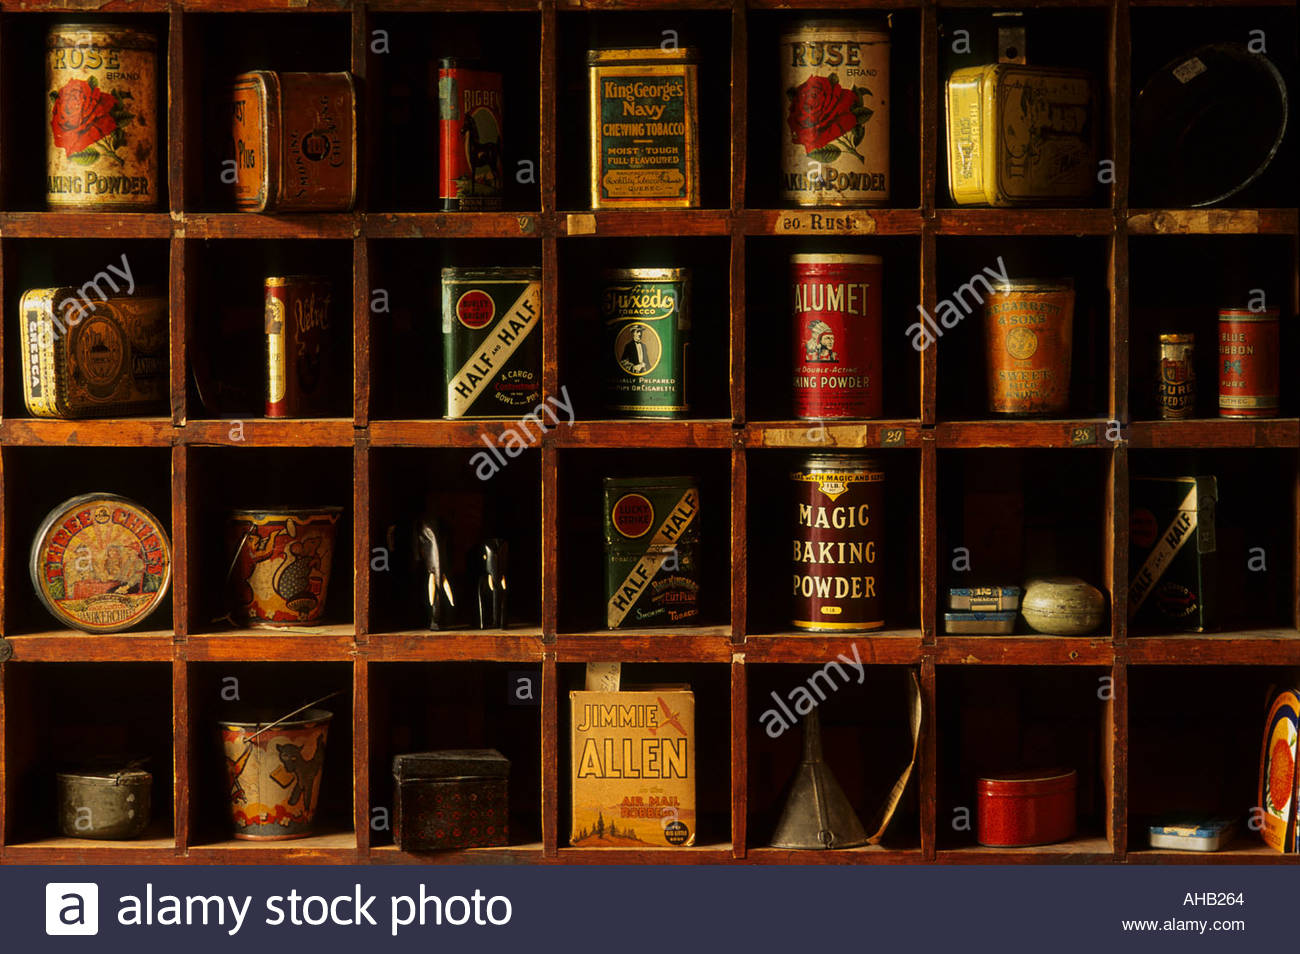 nick nack shelf stock photos nick nack shelf stock images alamy